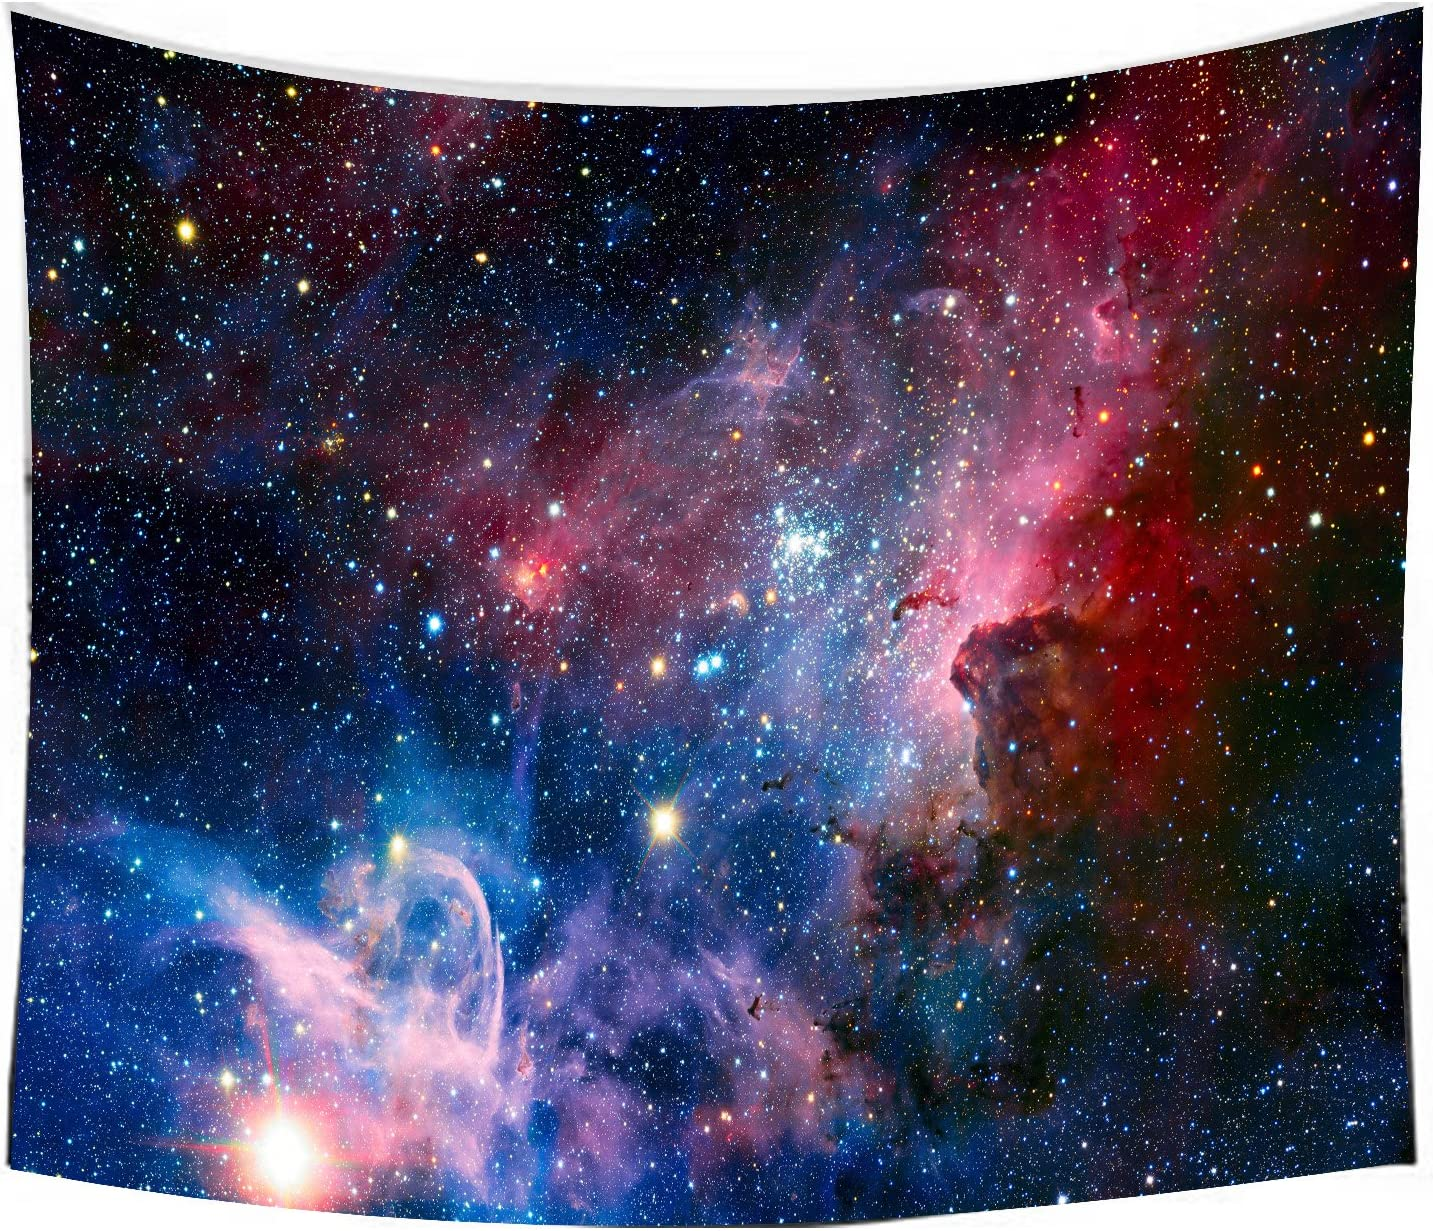 """Starry Galaxy Sky Tapestry, Home 3D Cosmic Tapestry, Living Room Bedroom Decoration Tapestry, Mattress, Tablecloth (59.1""""X82.7"""", Starry sky)"""